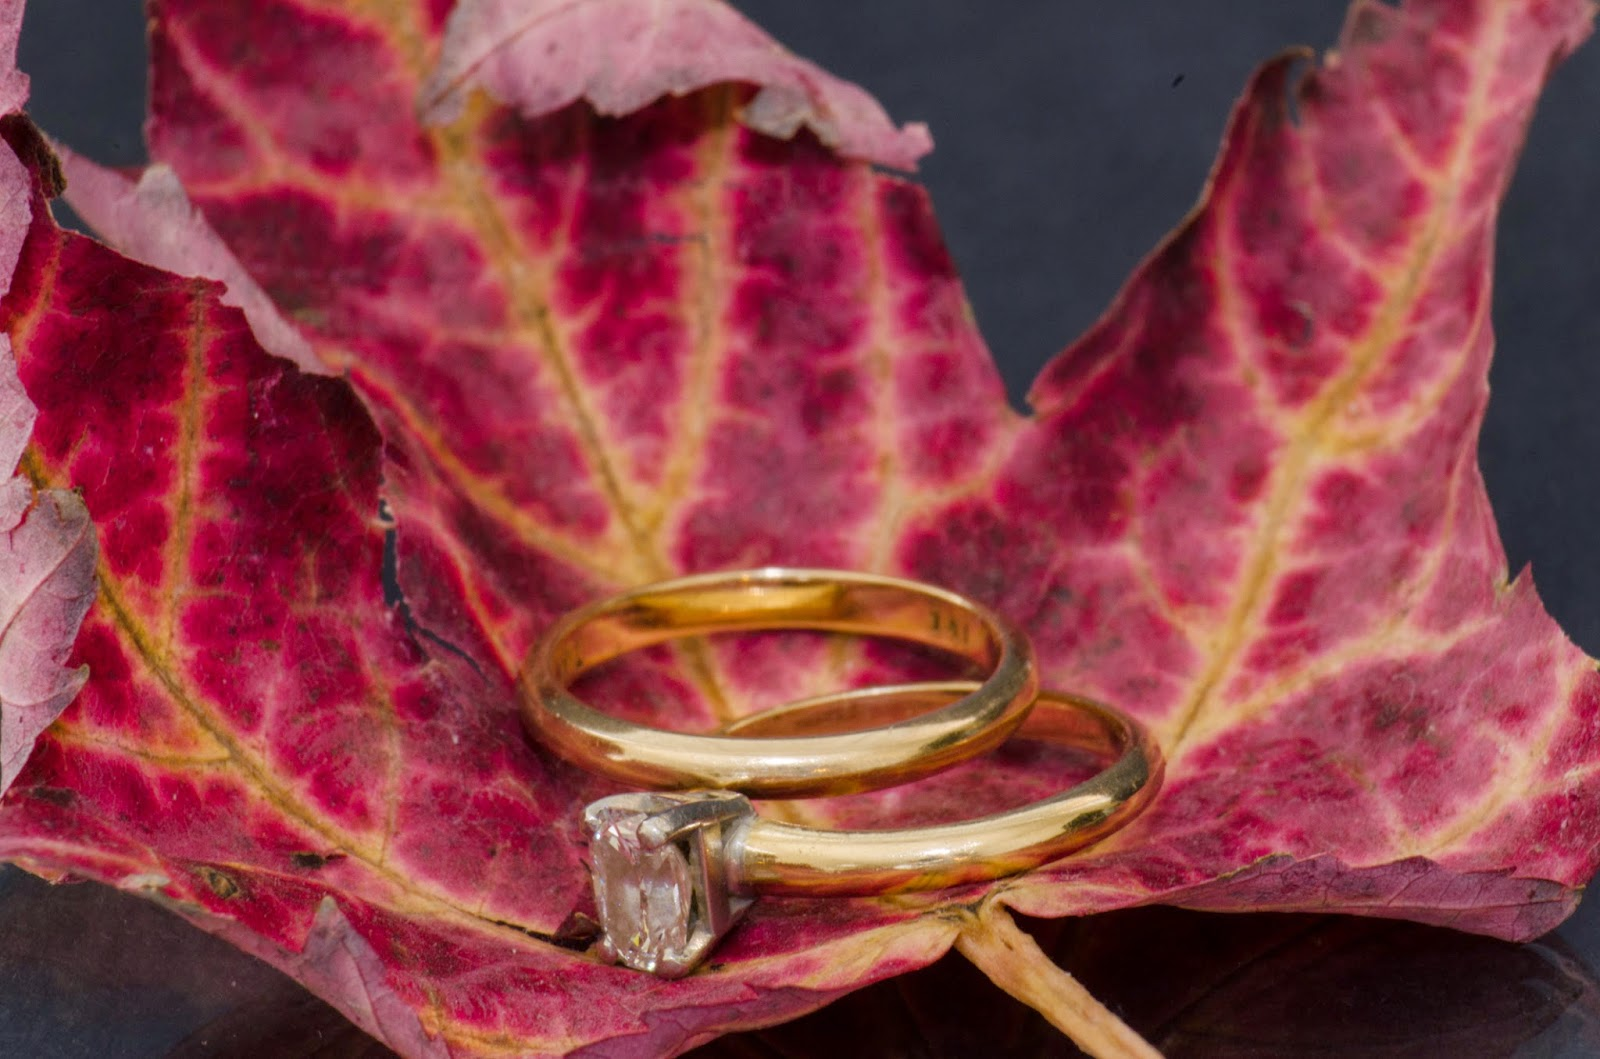 image of engagement and wedding rings resting on a dried maple leaf